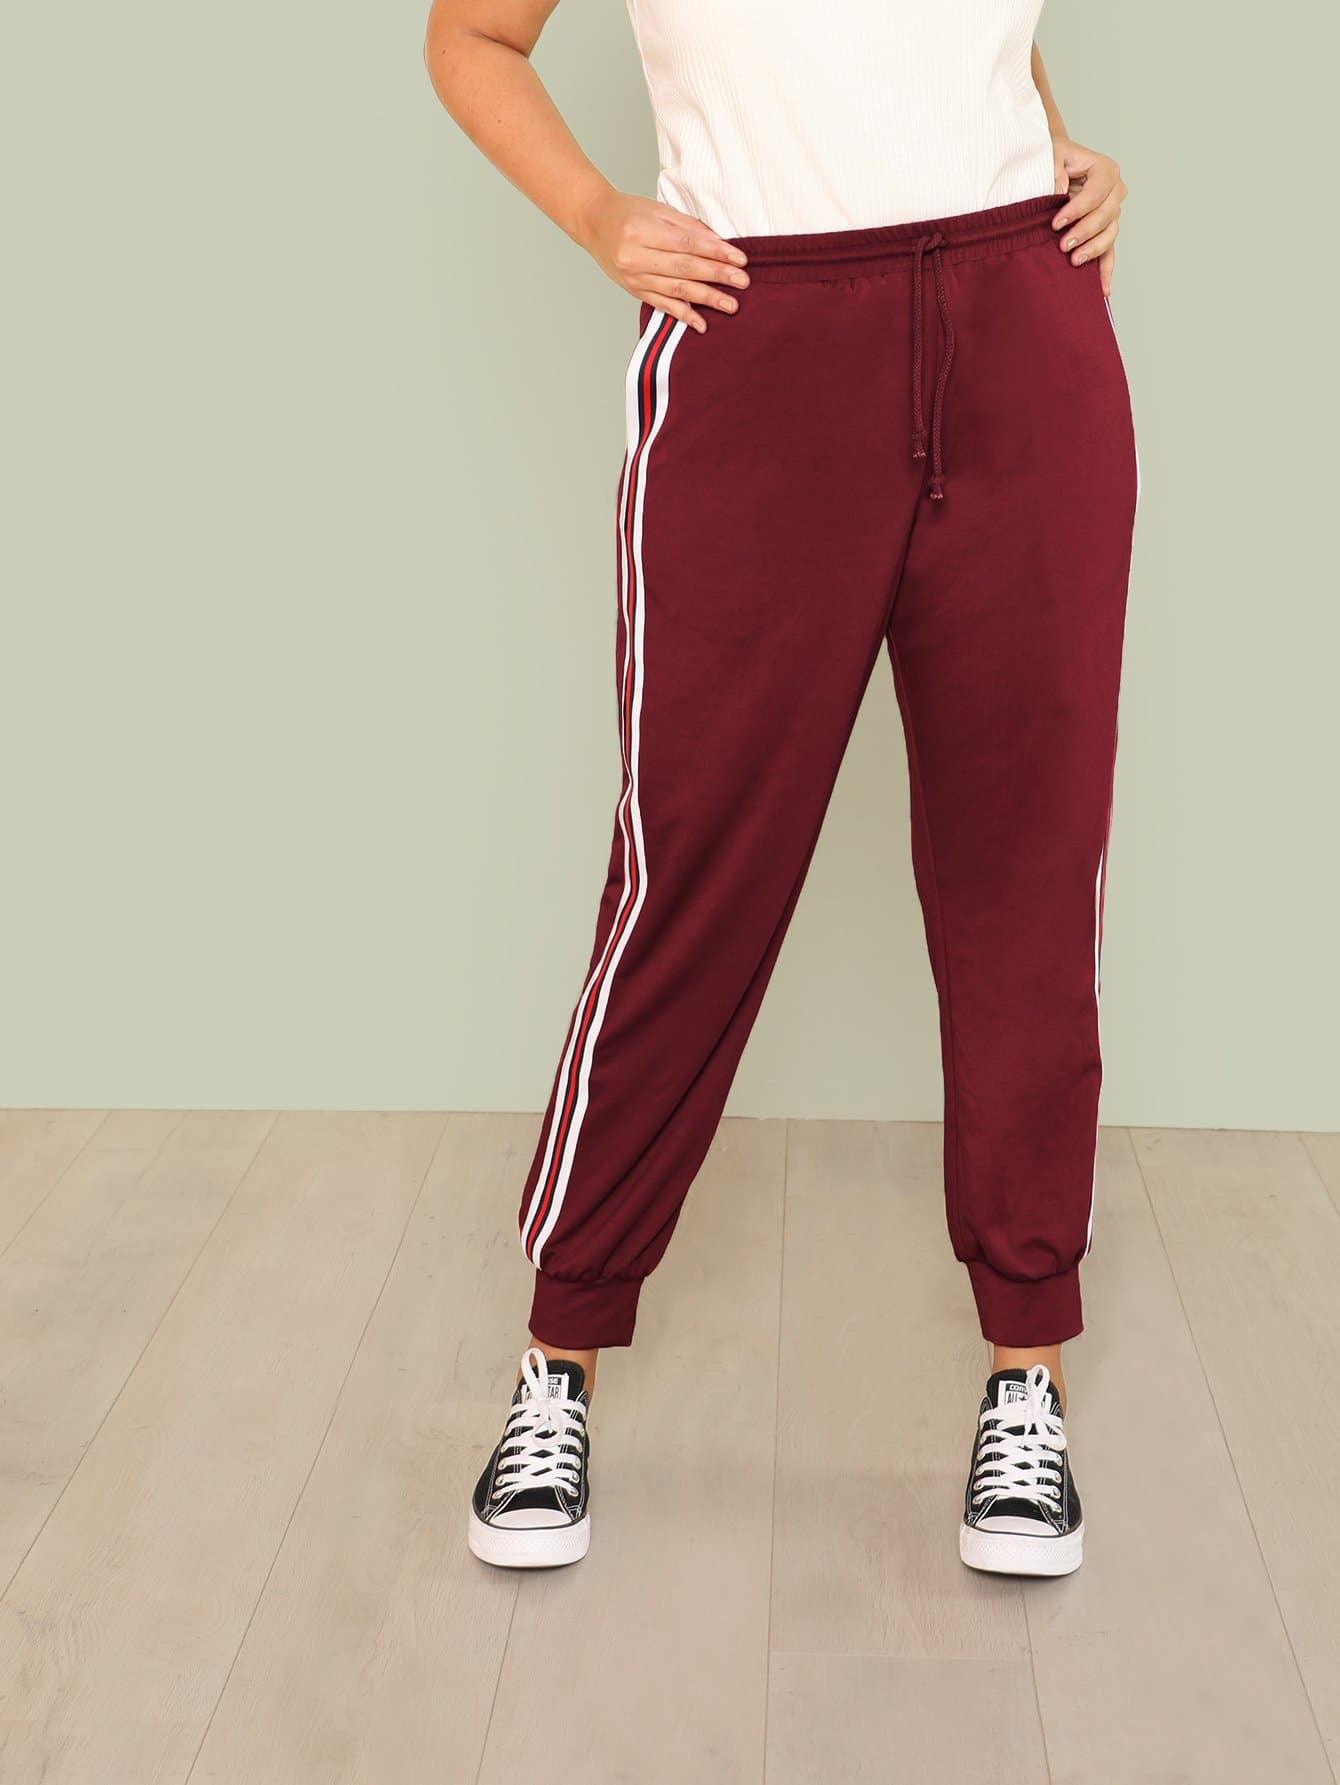 Contrast Striped Side Drawstring Waist Sweatpants contrast striped side sweatpants